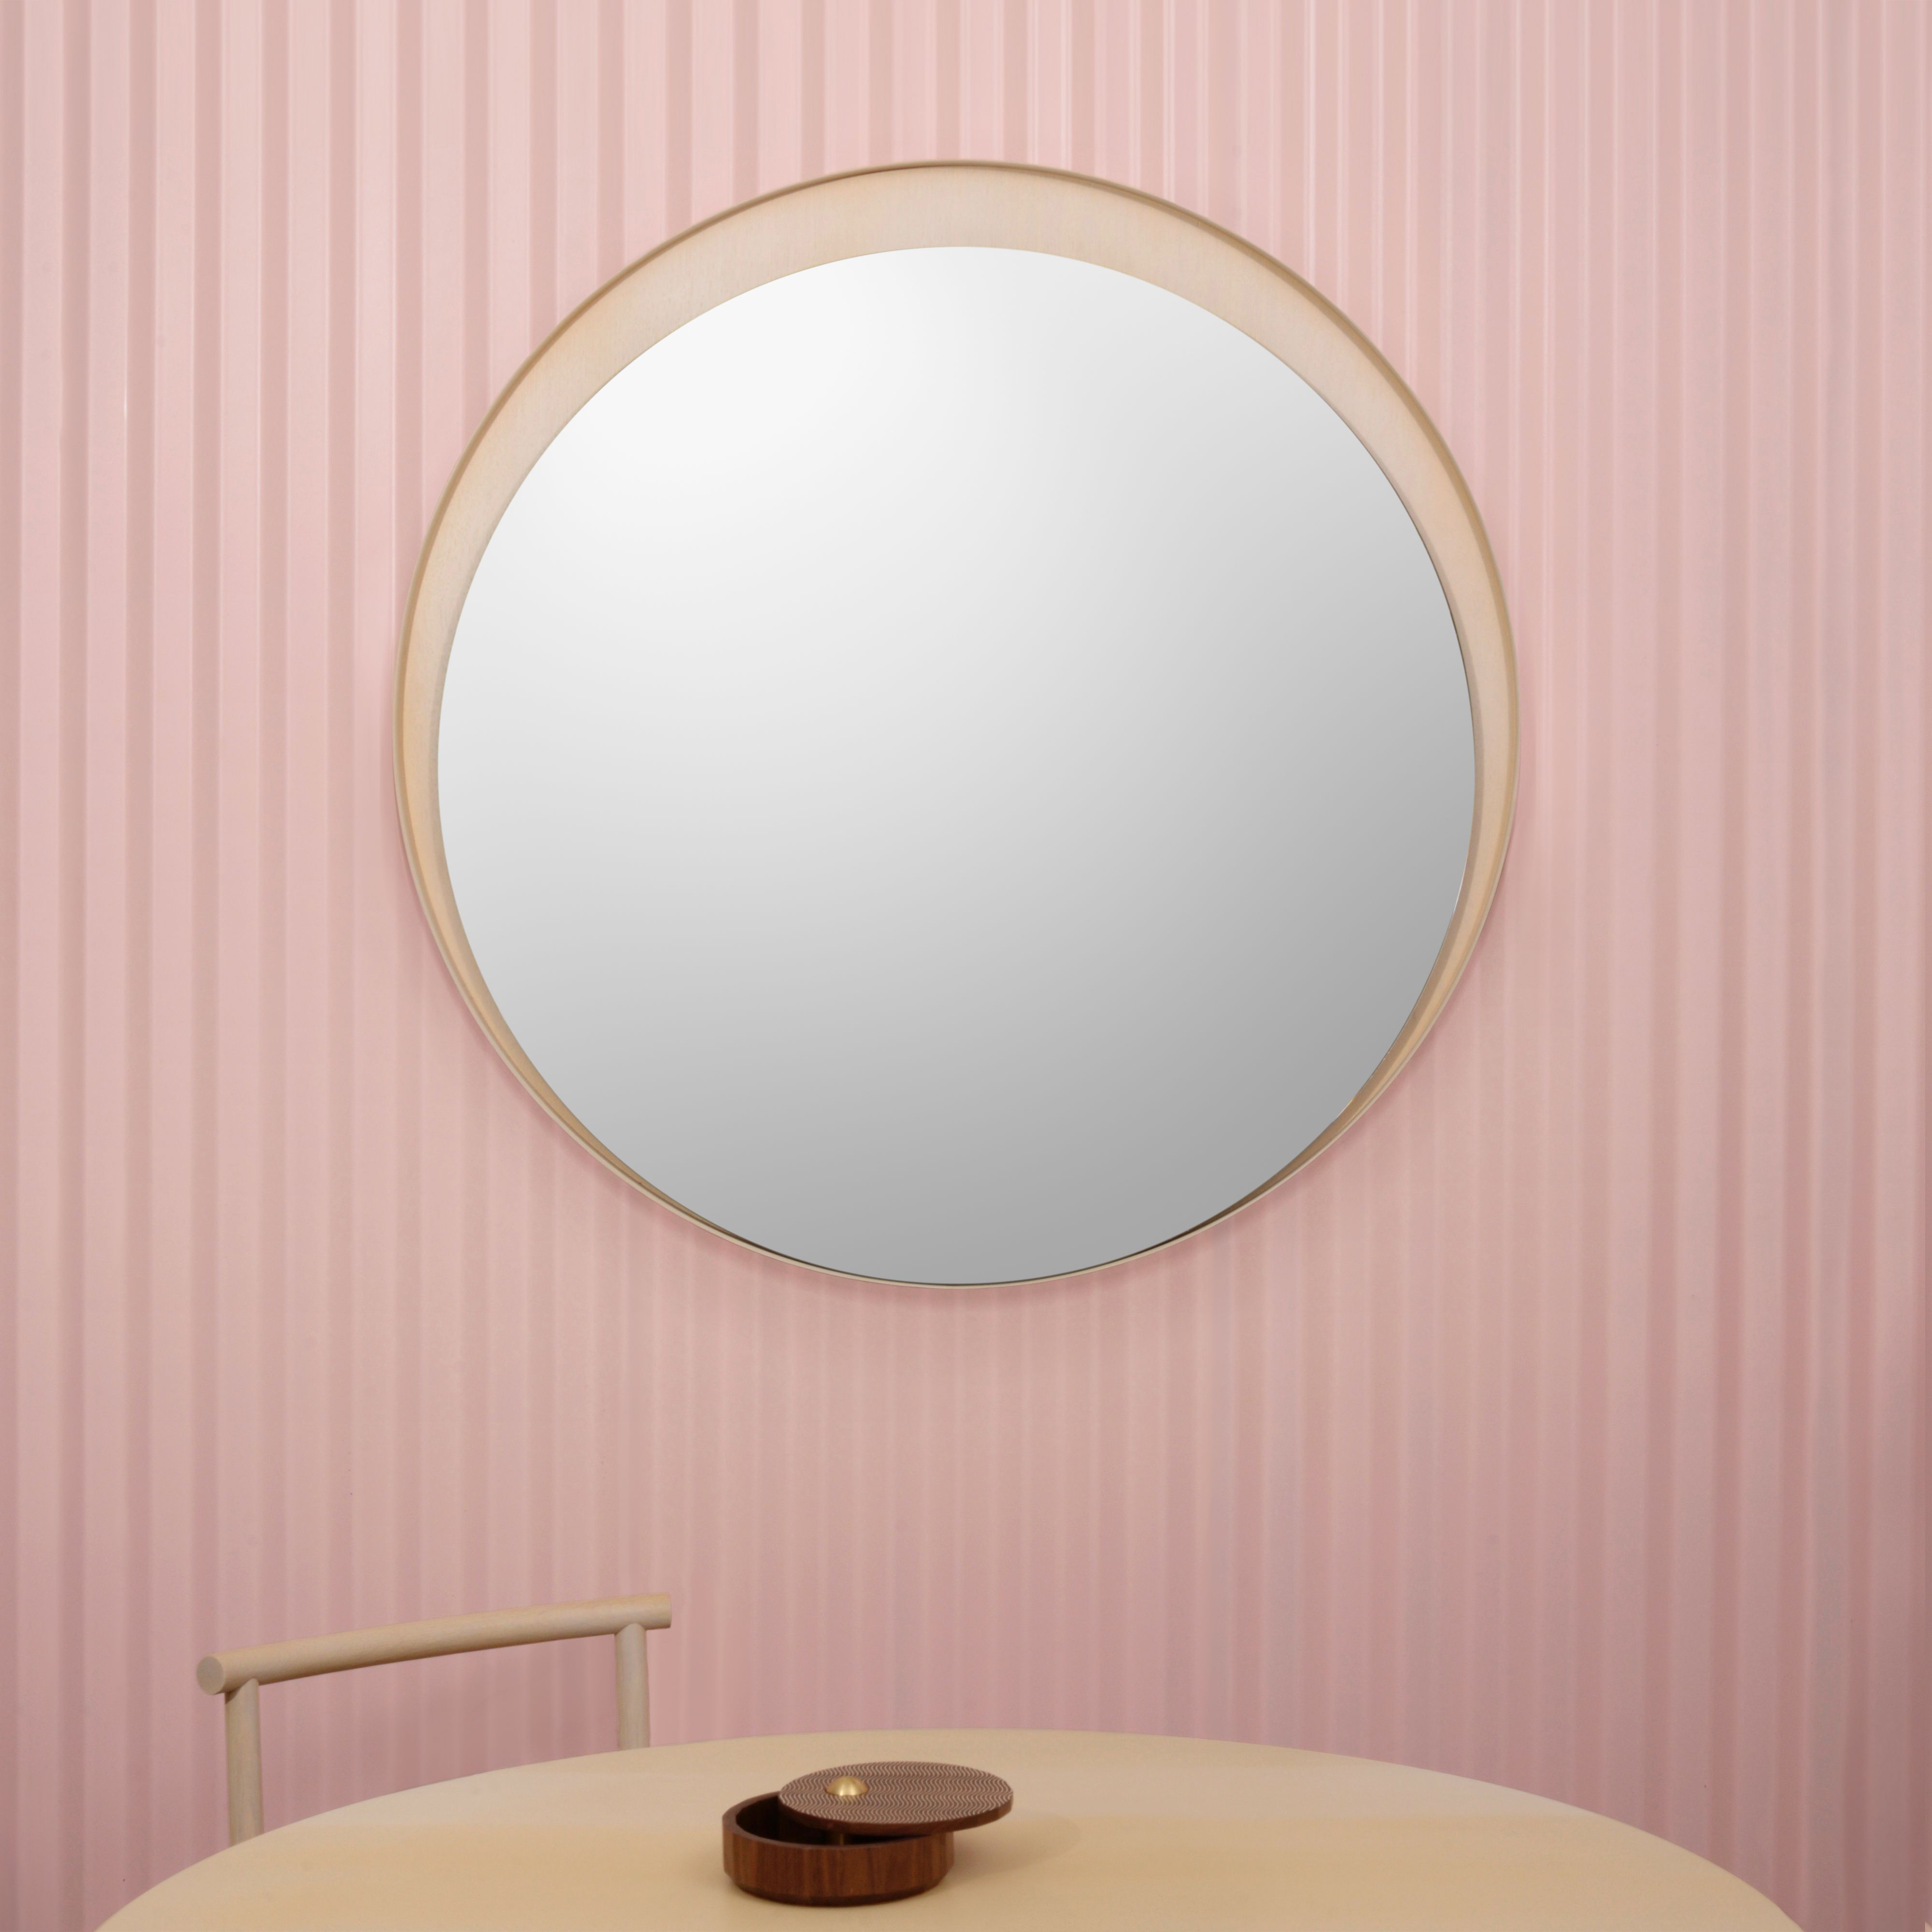 Lead Time 4weeks 6weeks Made To Order Materials Bleached White Oak Polyurethane Finish 1 4 Bronze Mirror Size Inc With Images Bronze Mirror Round Mirrors Mirror